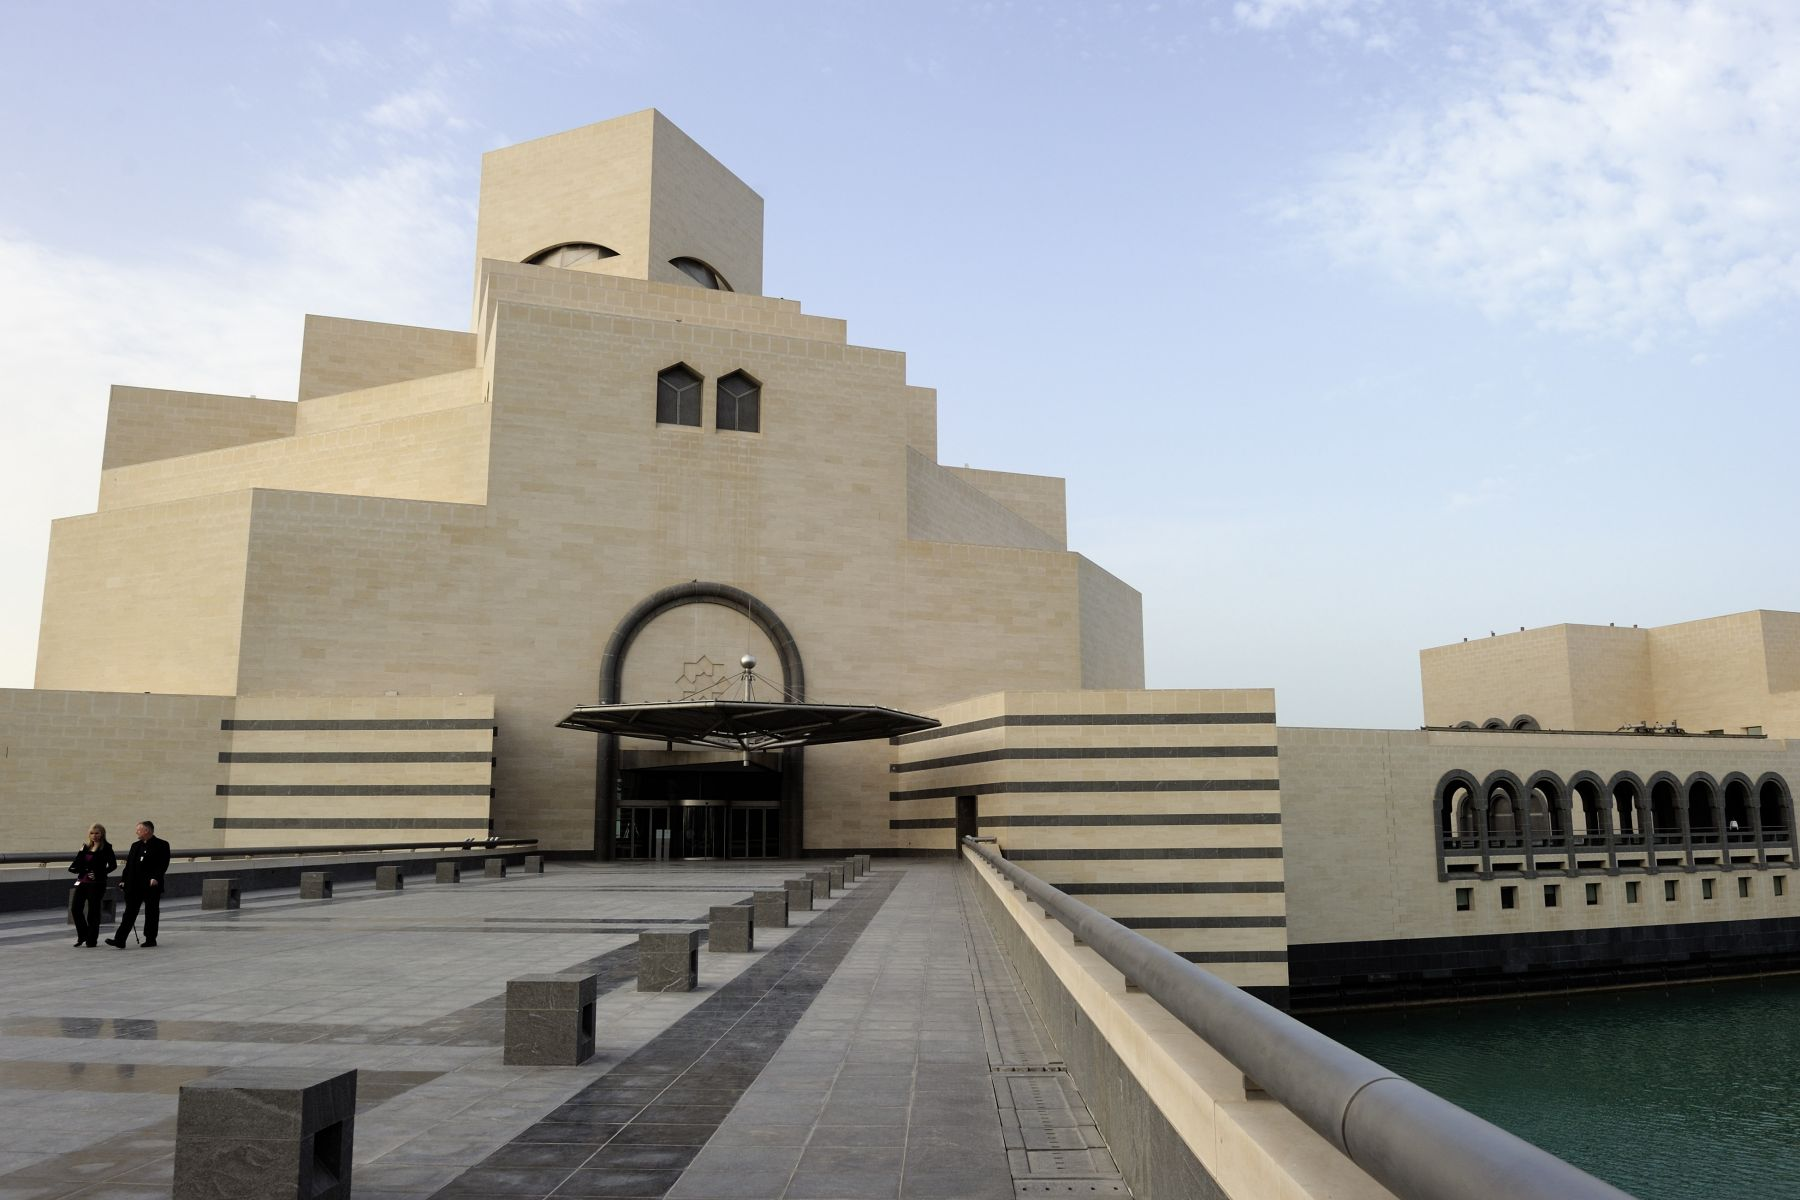 View from outside the Museum of Islamic Art in Doha. Under the umbrella of the Qatar Museums Authority (QMA), the Museum of Islamic Art is the flagship project of His Highness Sheikh Hamad bin Khalifa Al Thani's vision to make it the foremost museum of Islamic art in the world.